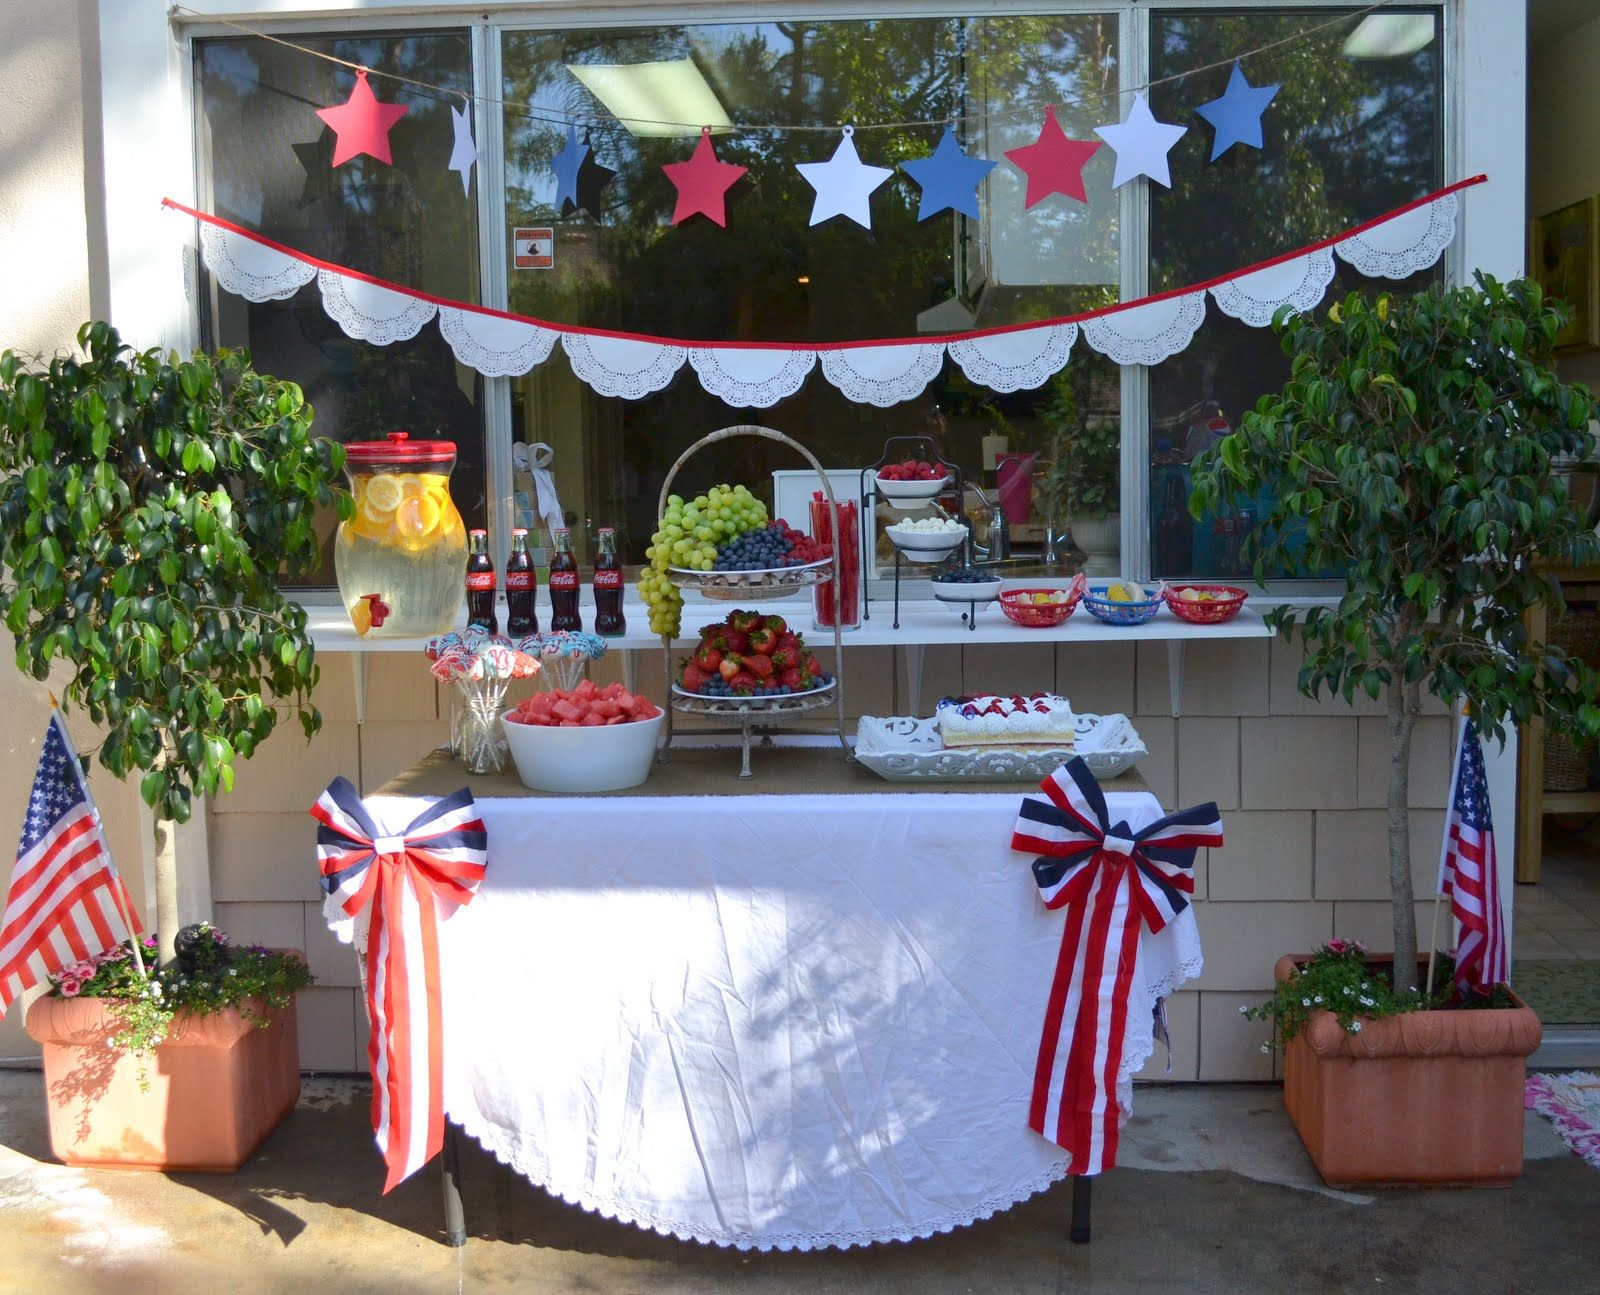 backyard party ideas | backyard design and backyard ideas